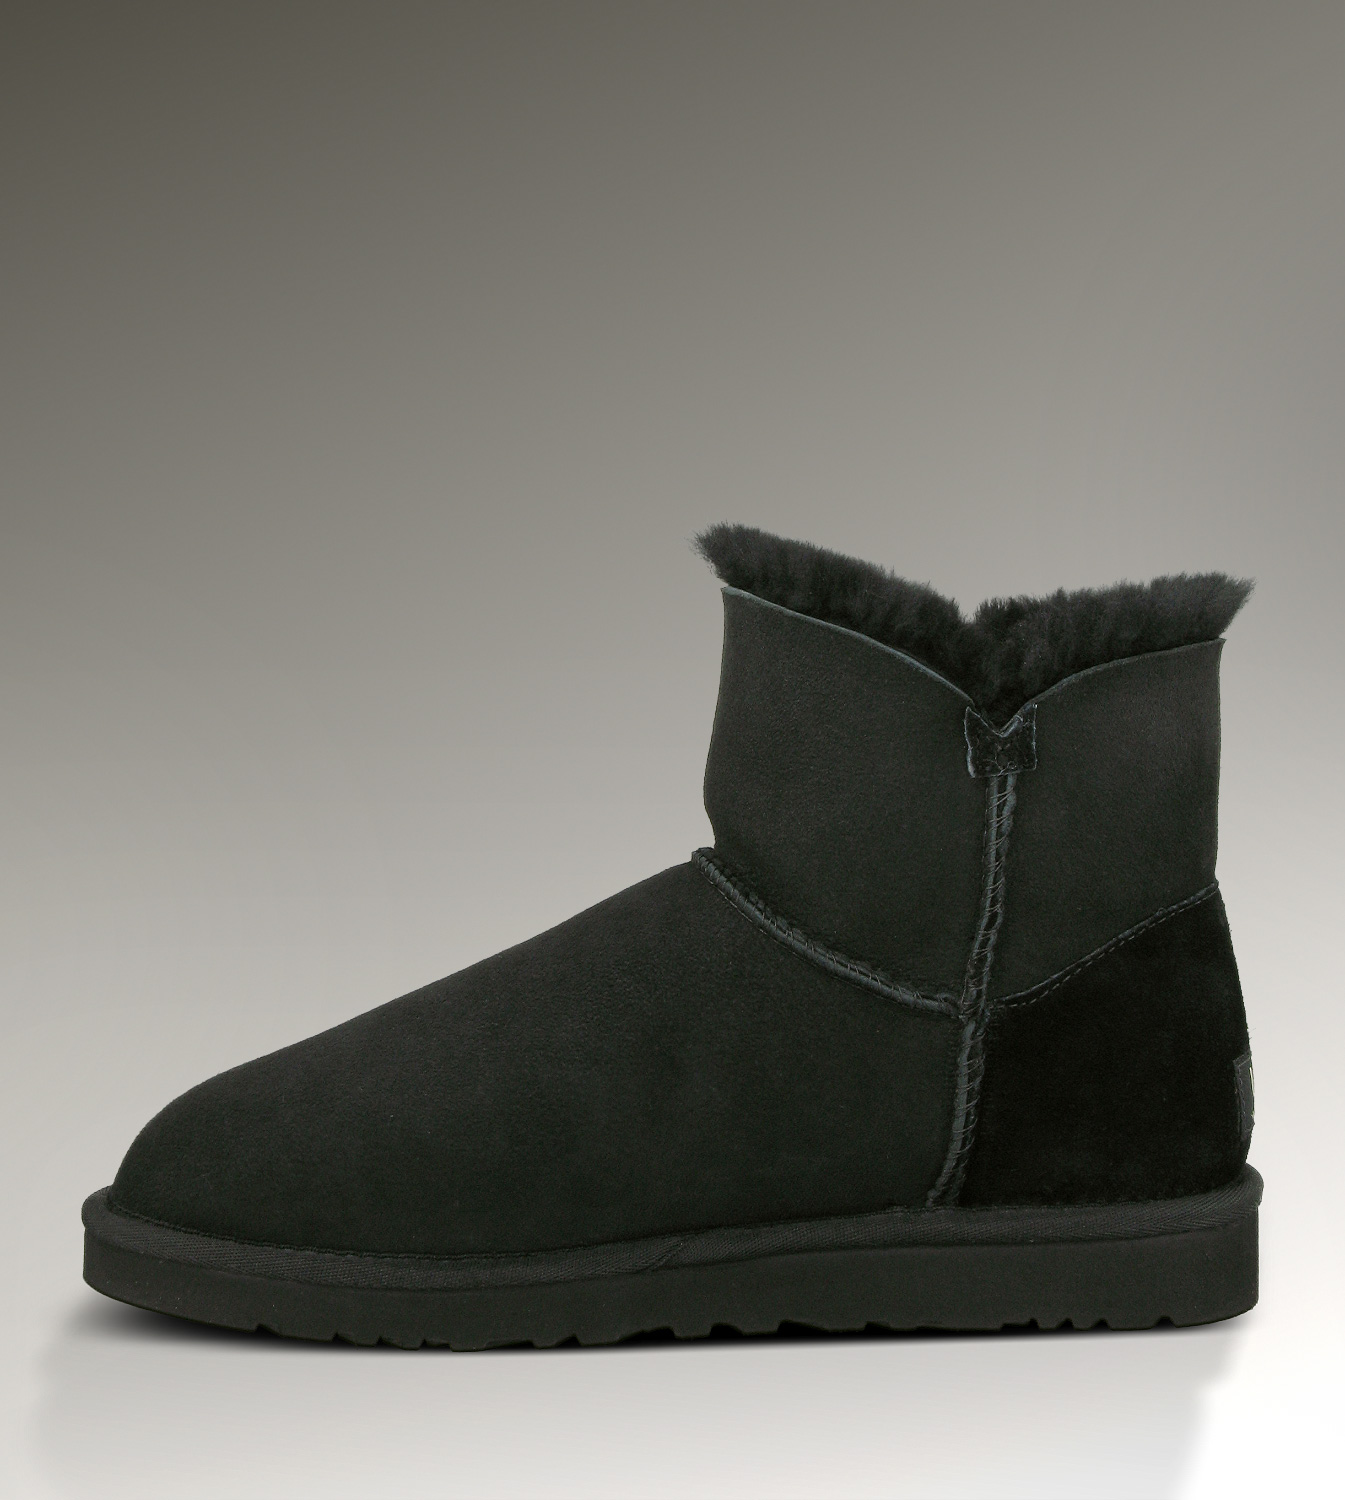 UGG Bailey Button Mini 3352 Black Boots